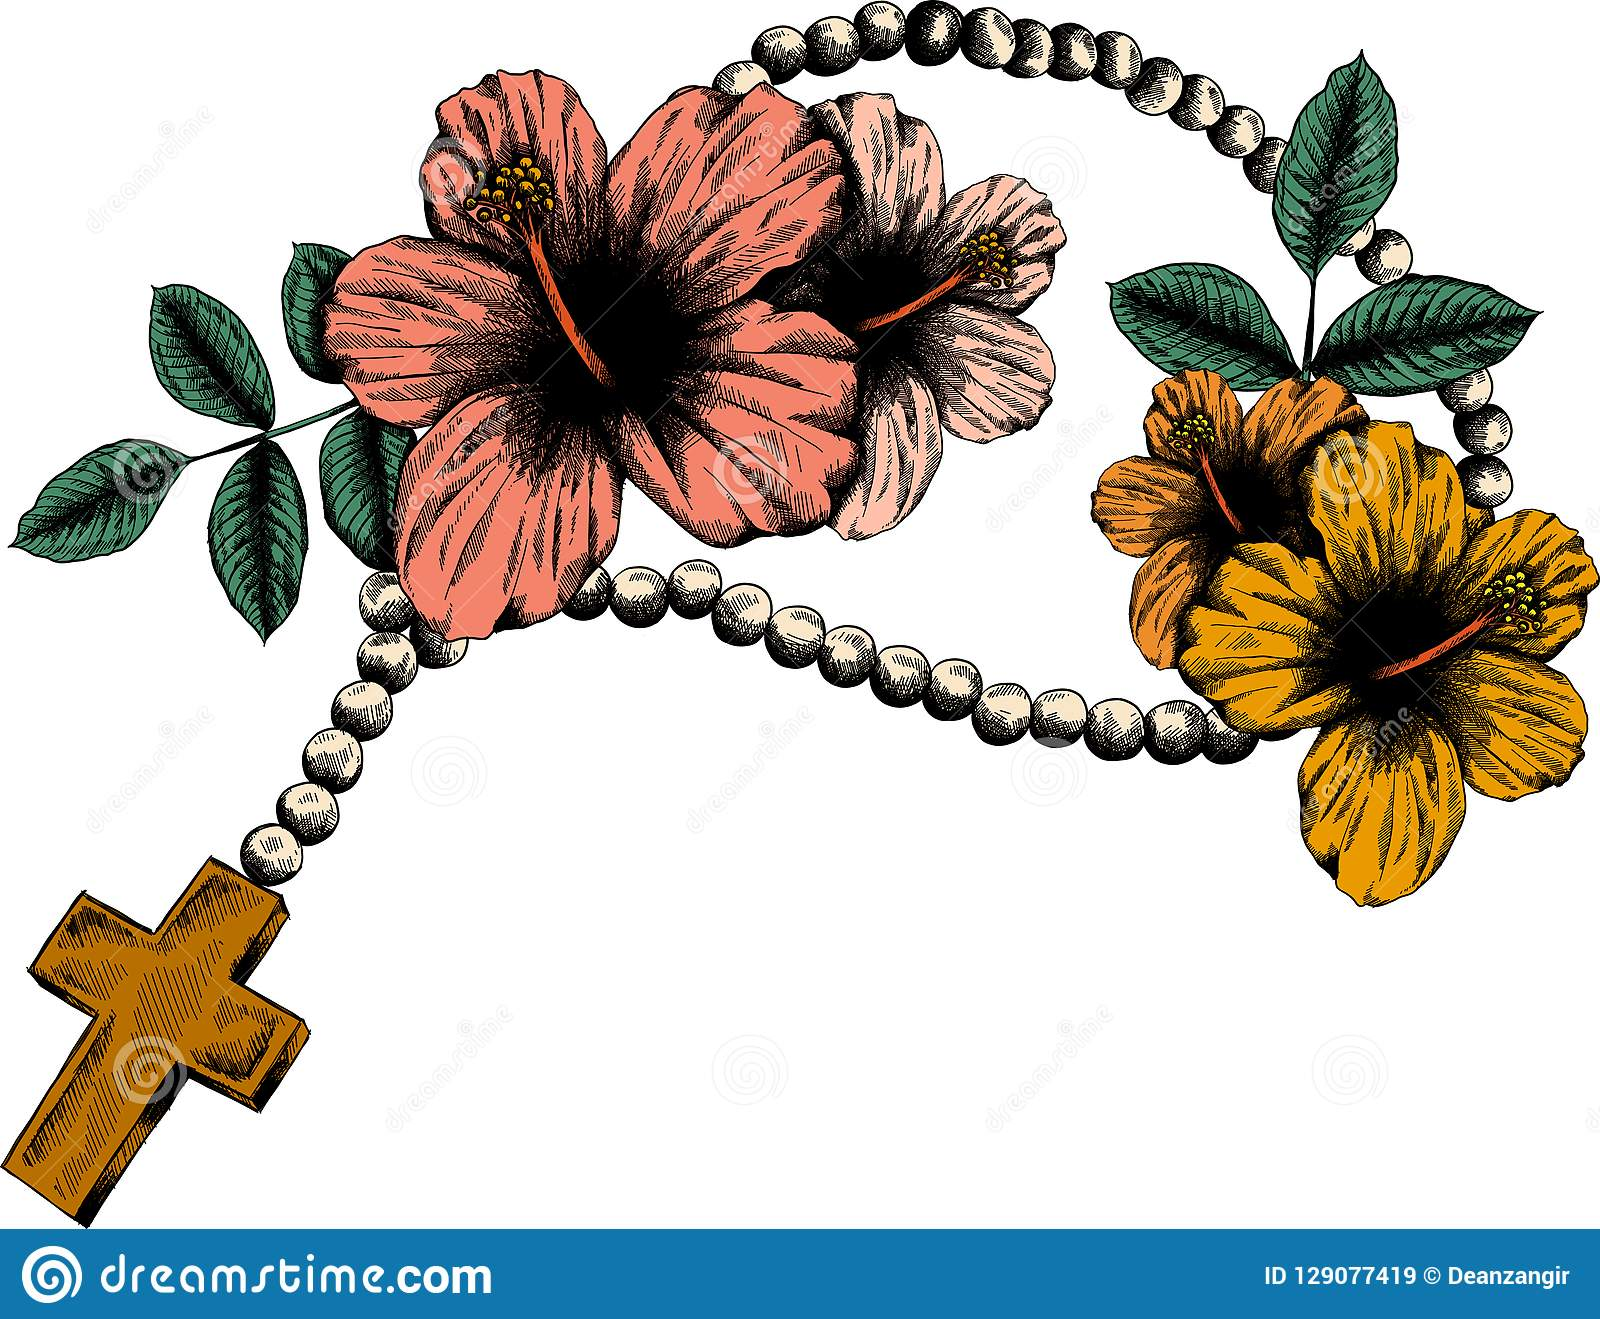 Holy Rosary Beads Illustration Prayer Catholic Chaplet With A Cross